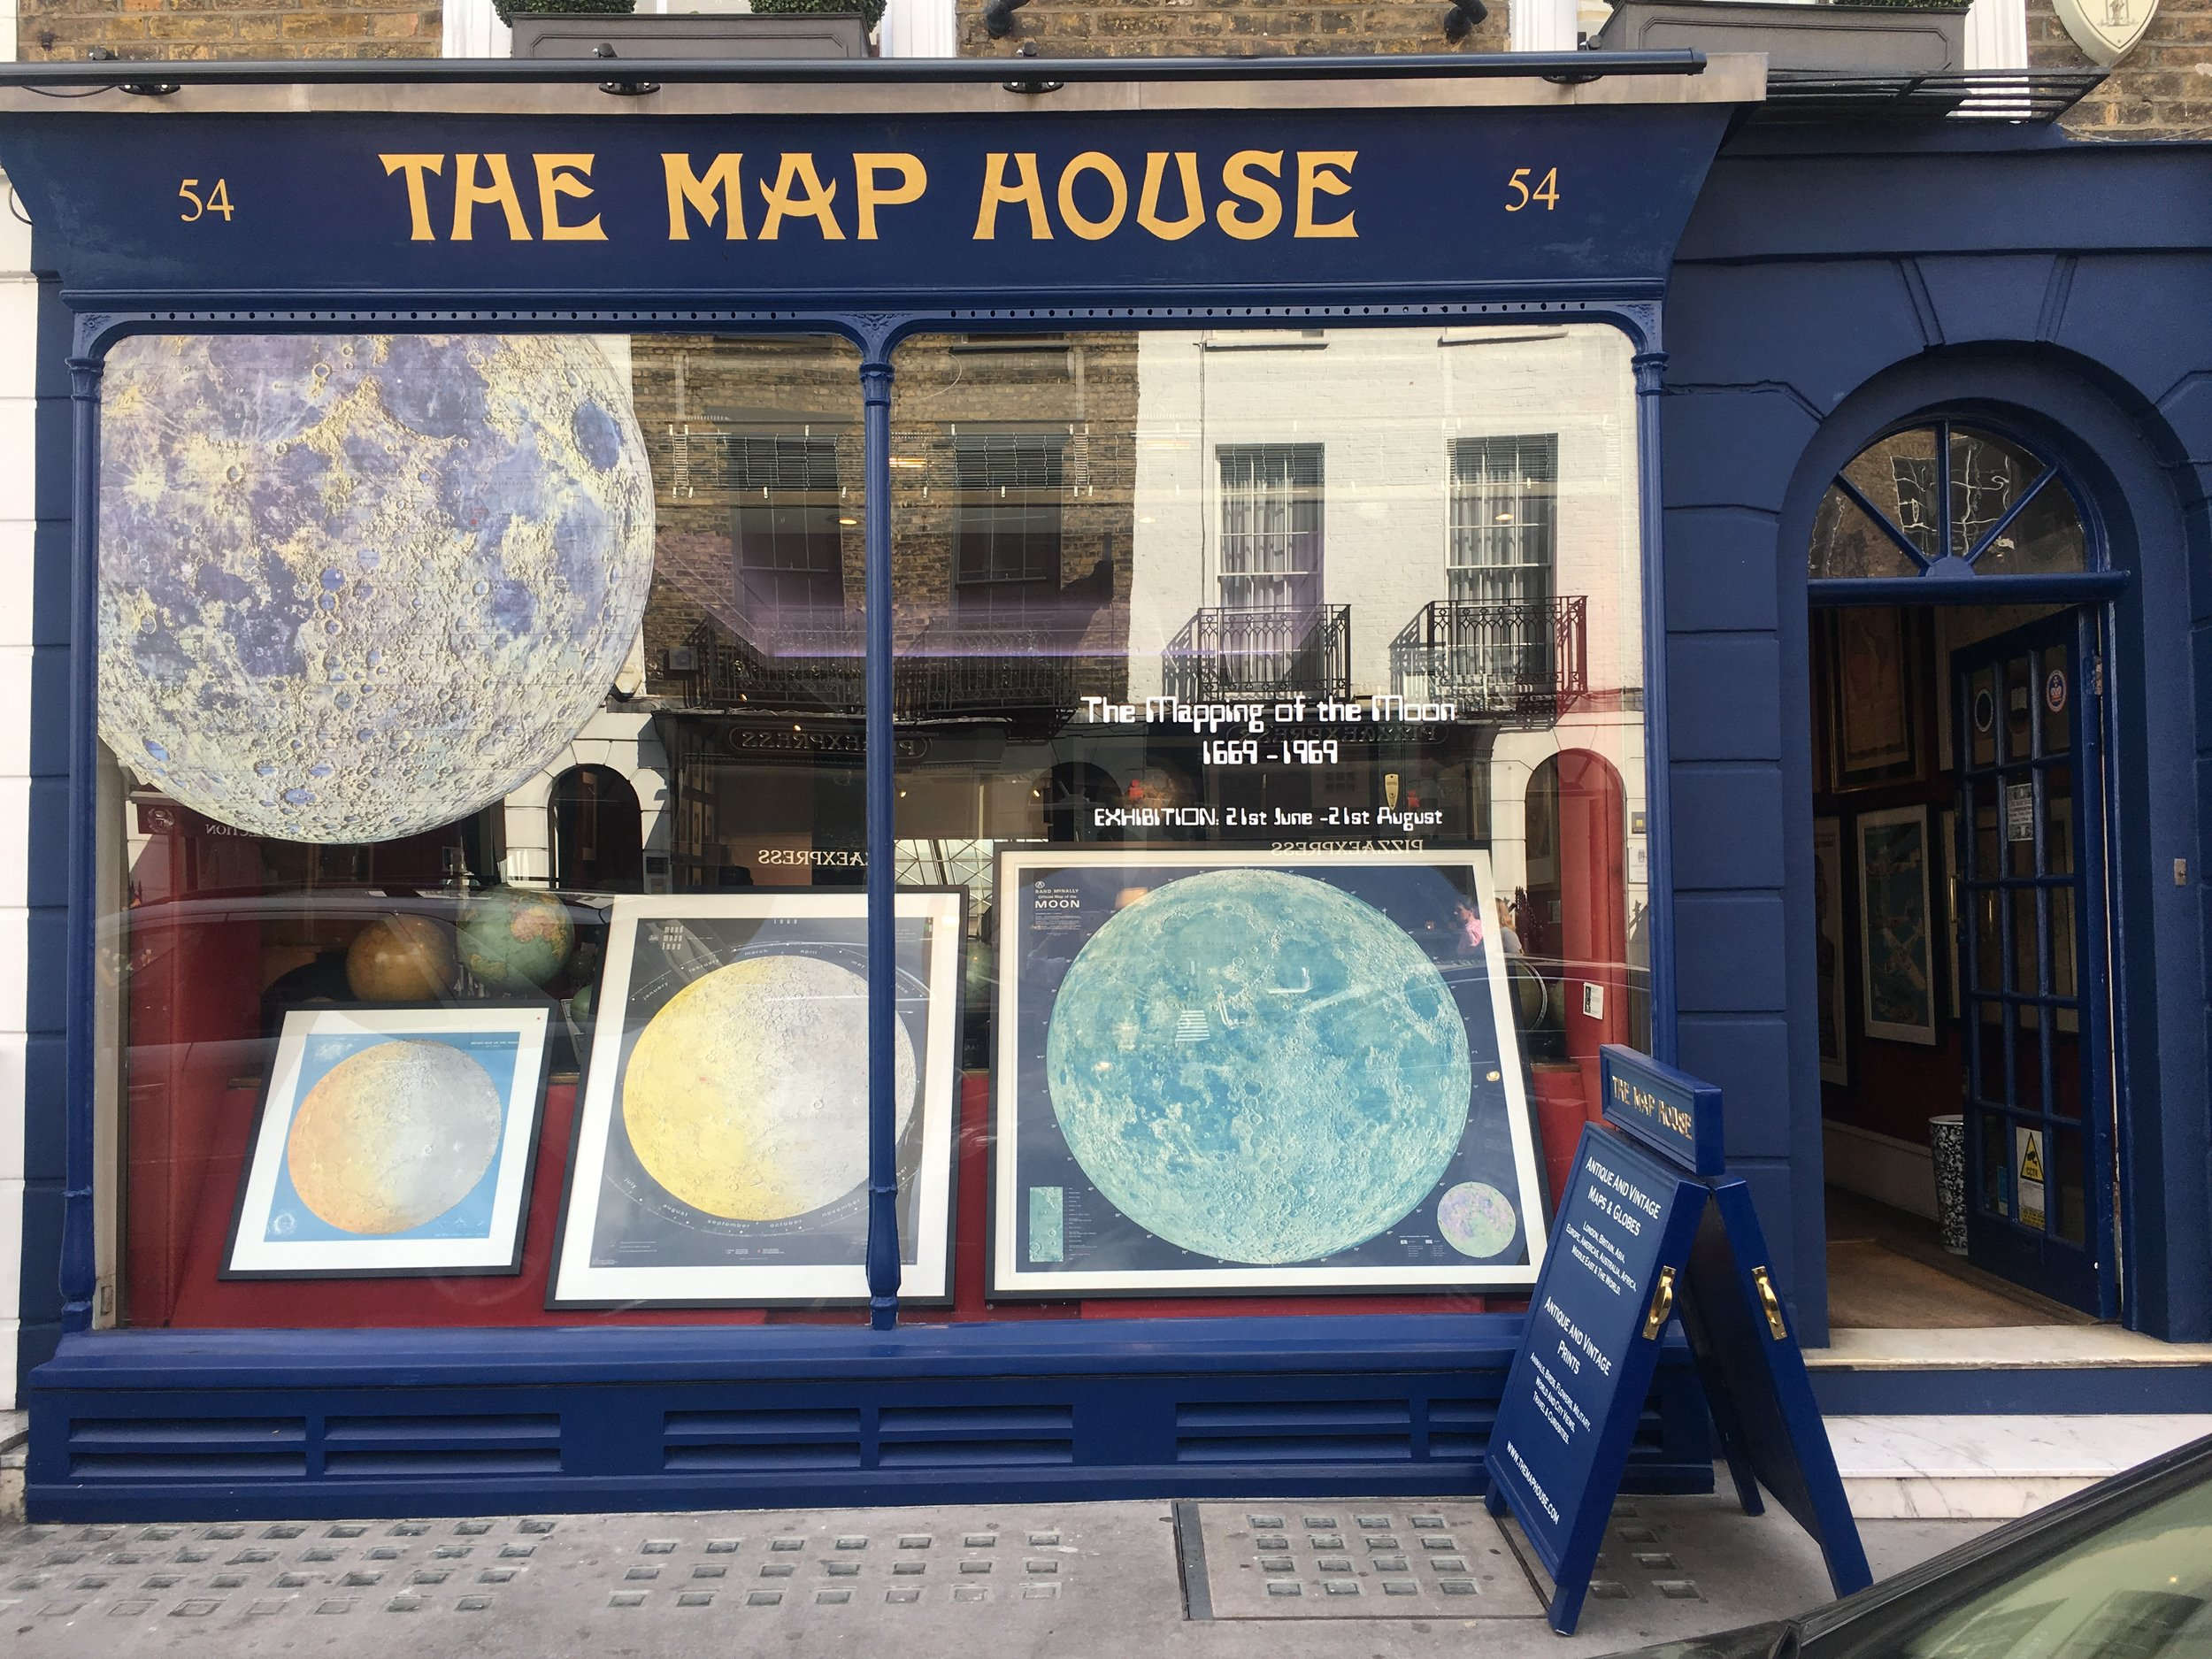 The Map House  was established originally in 1907 as Map and Booksellers by Alfred Sifton and Francis Praed. Now it provides antiquarian maps from around the world.